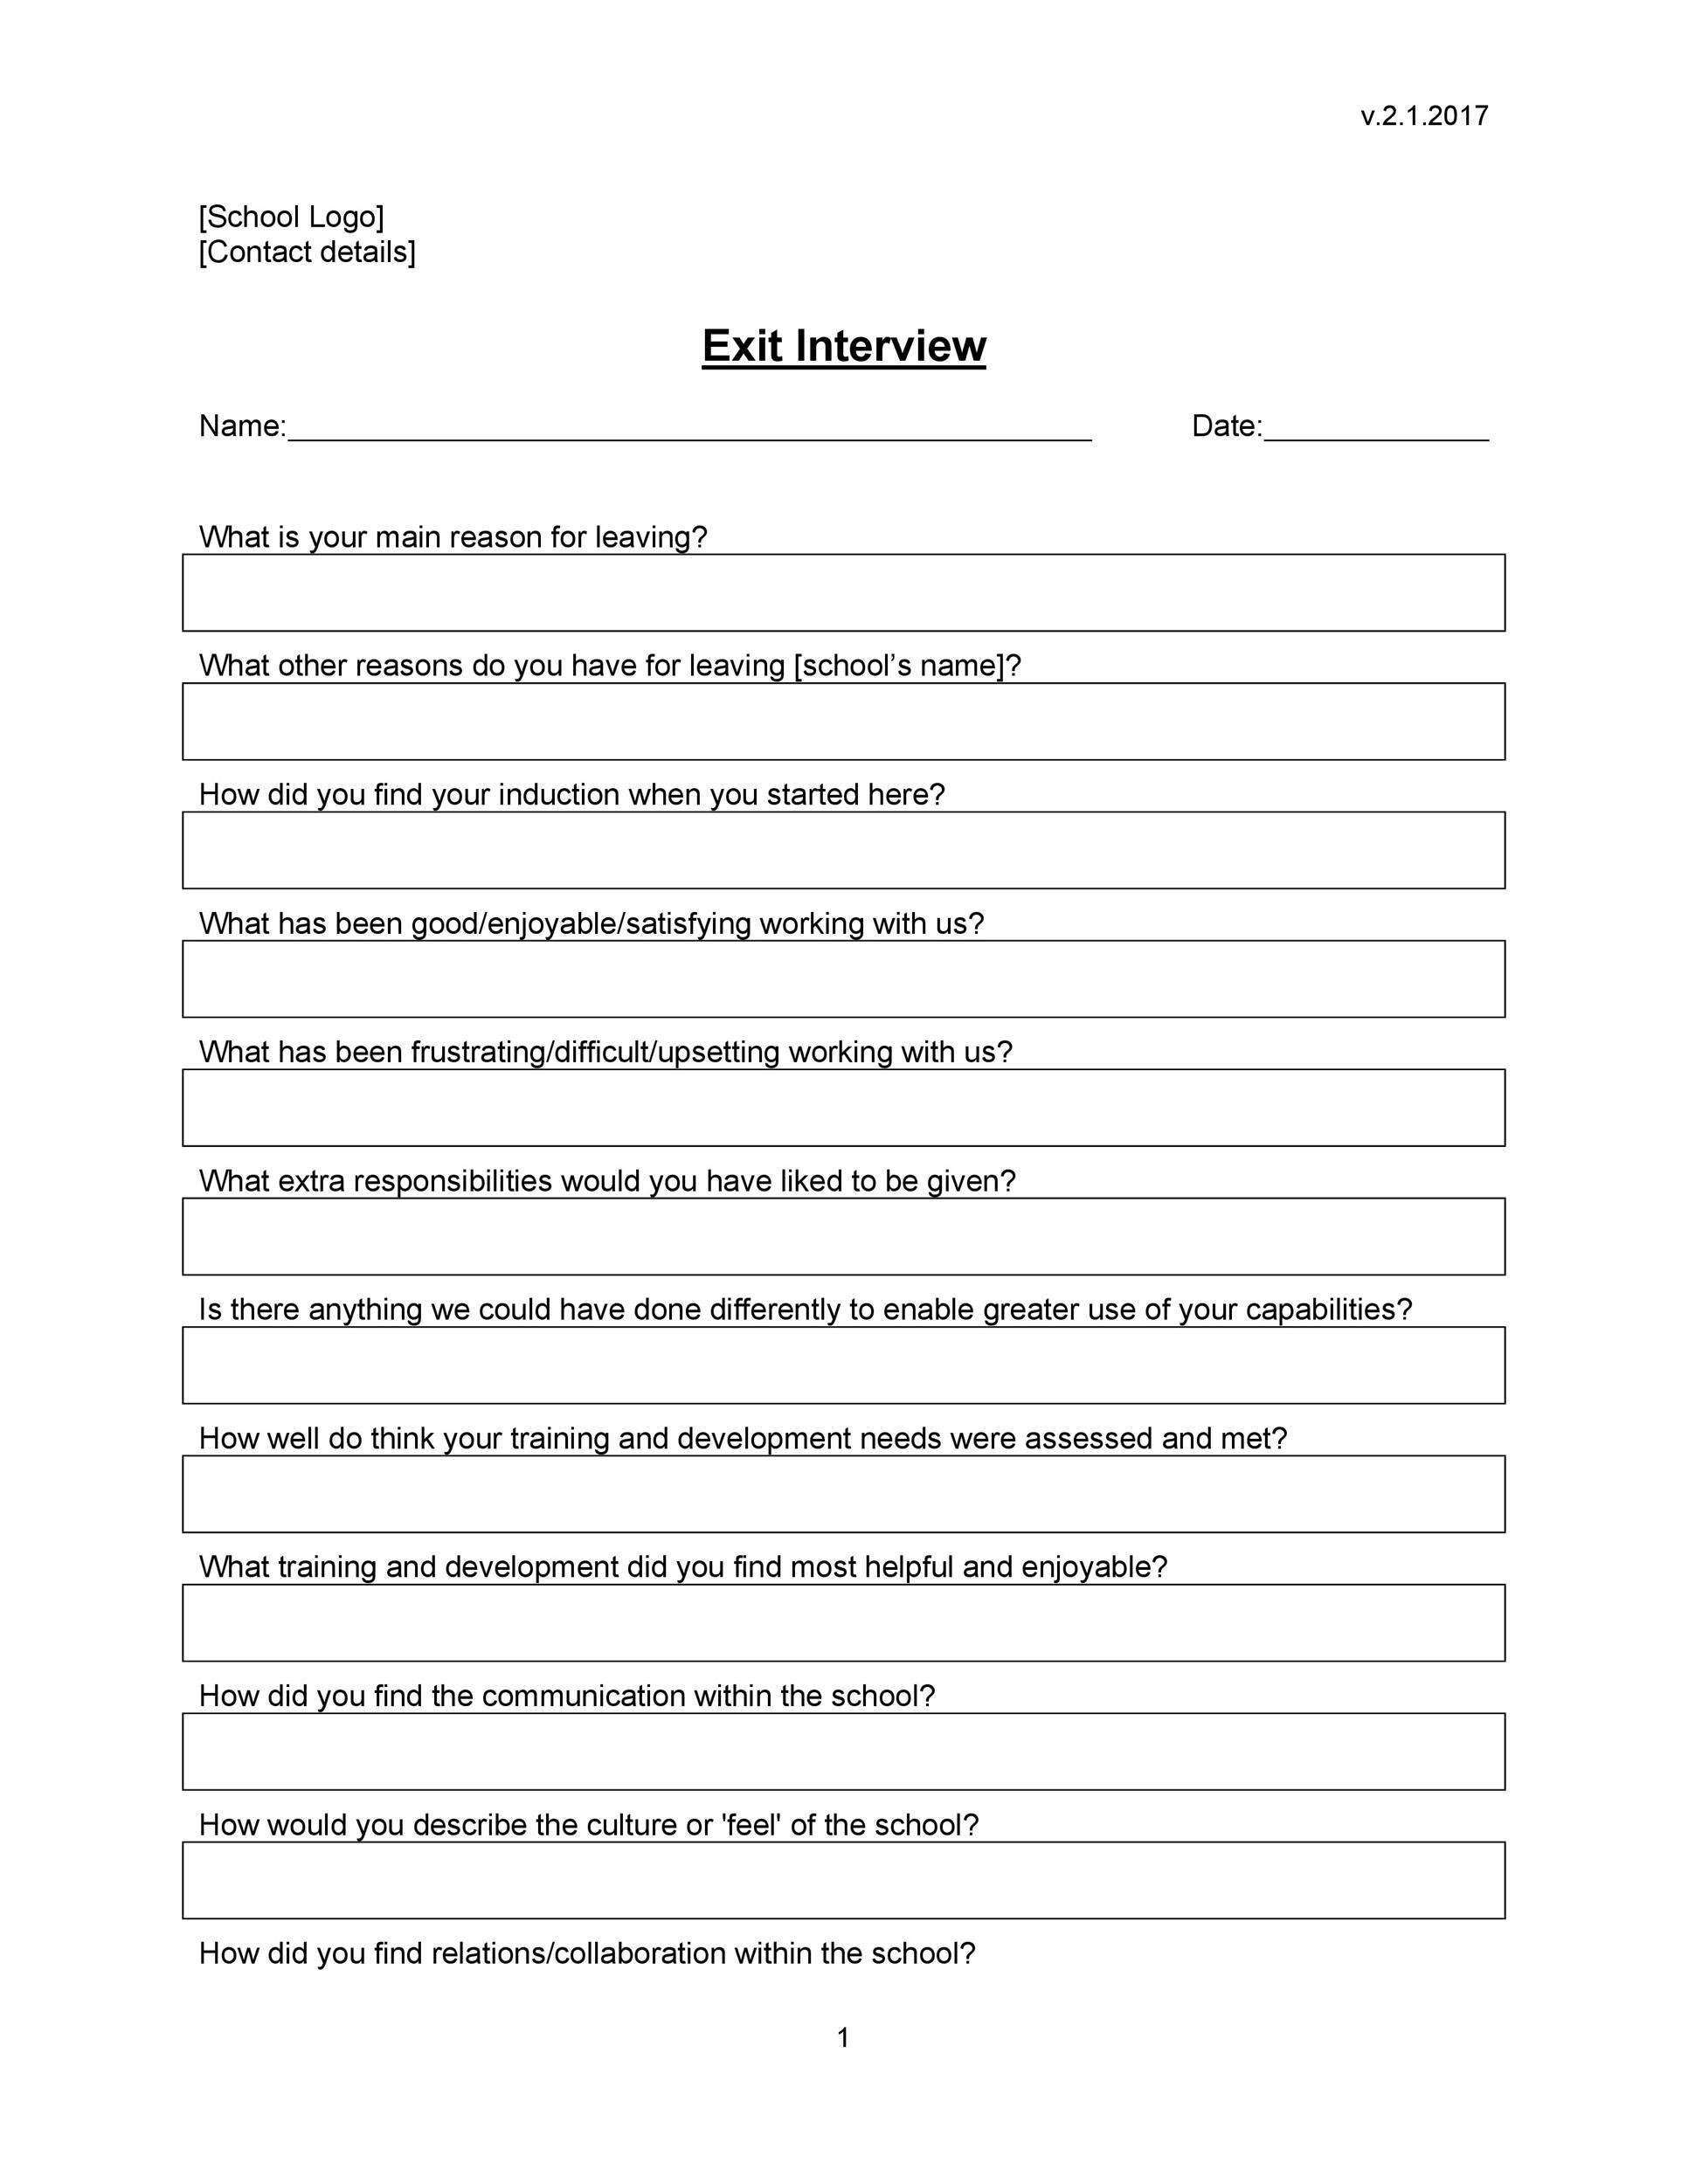 Free exit interview template 08